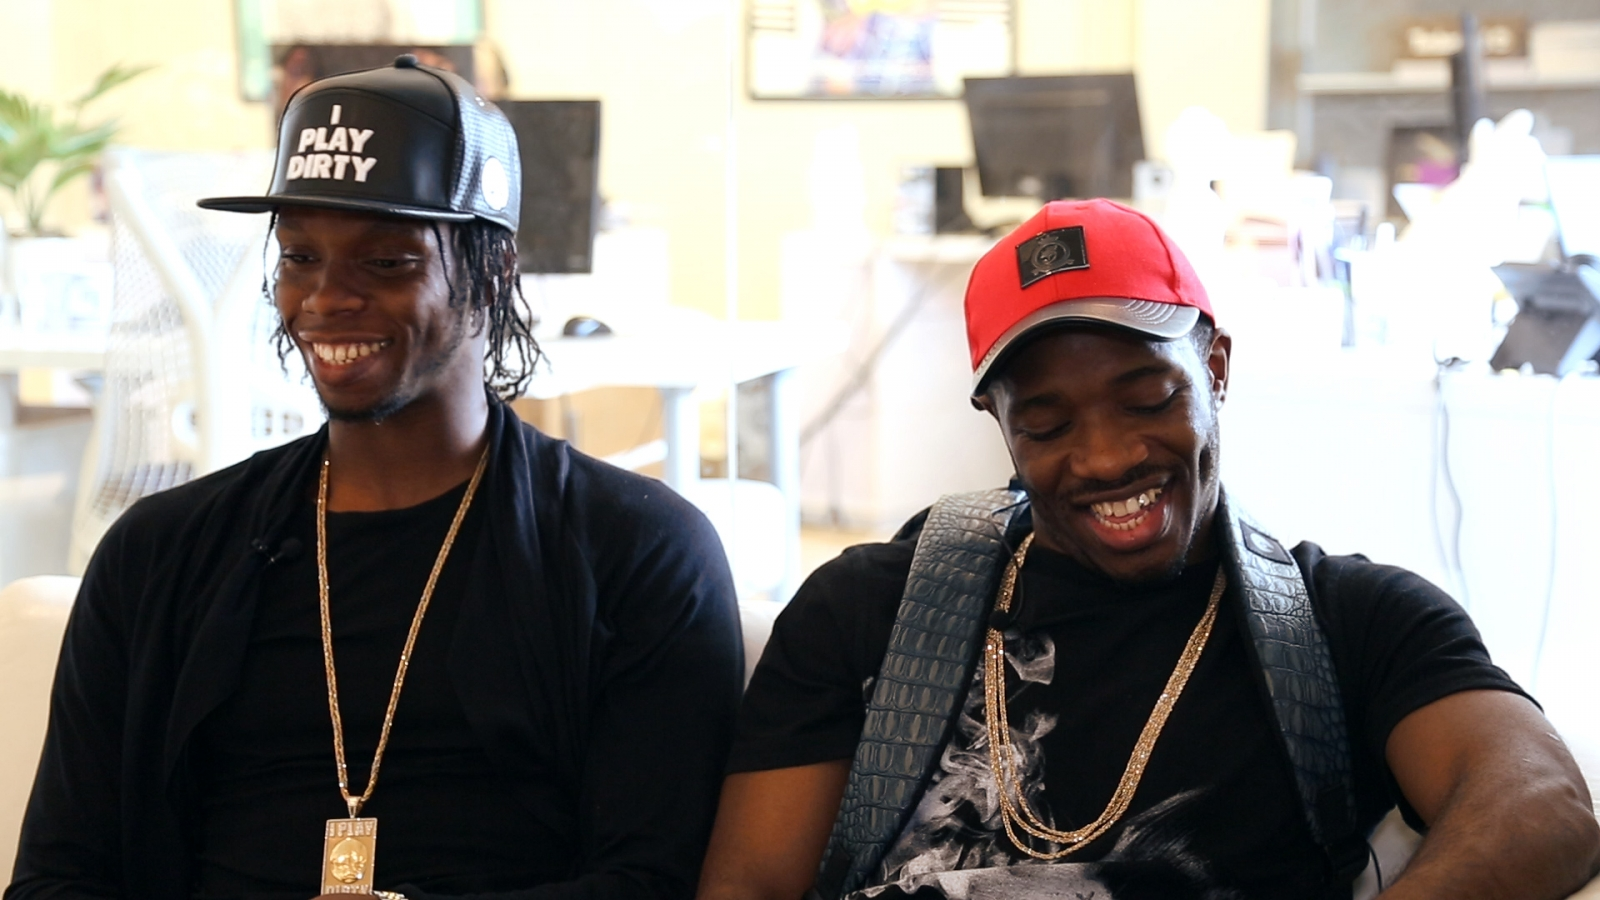 Krept and Konan screen grab